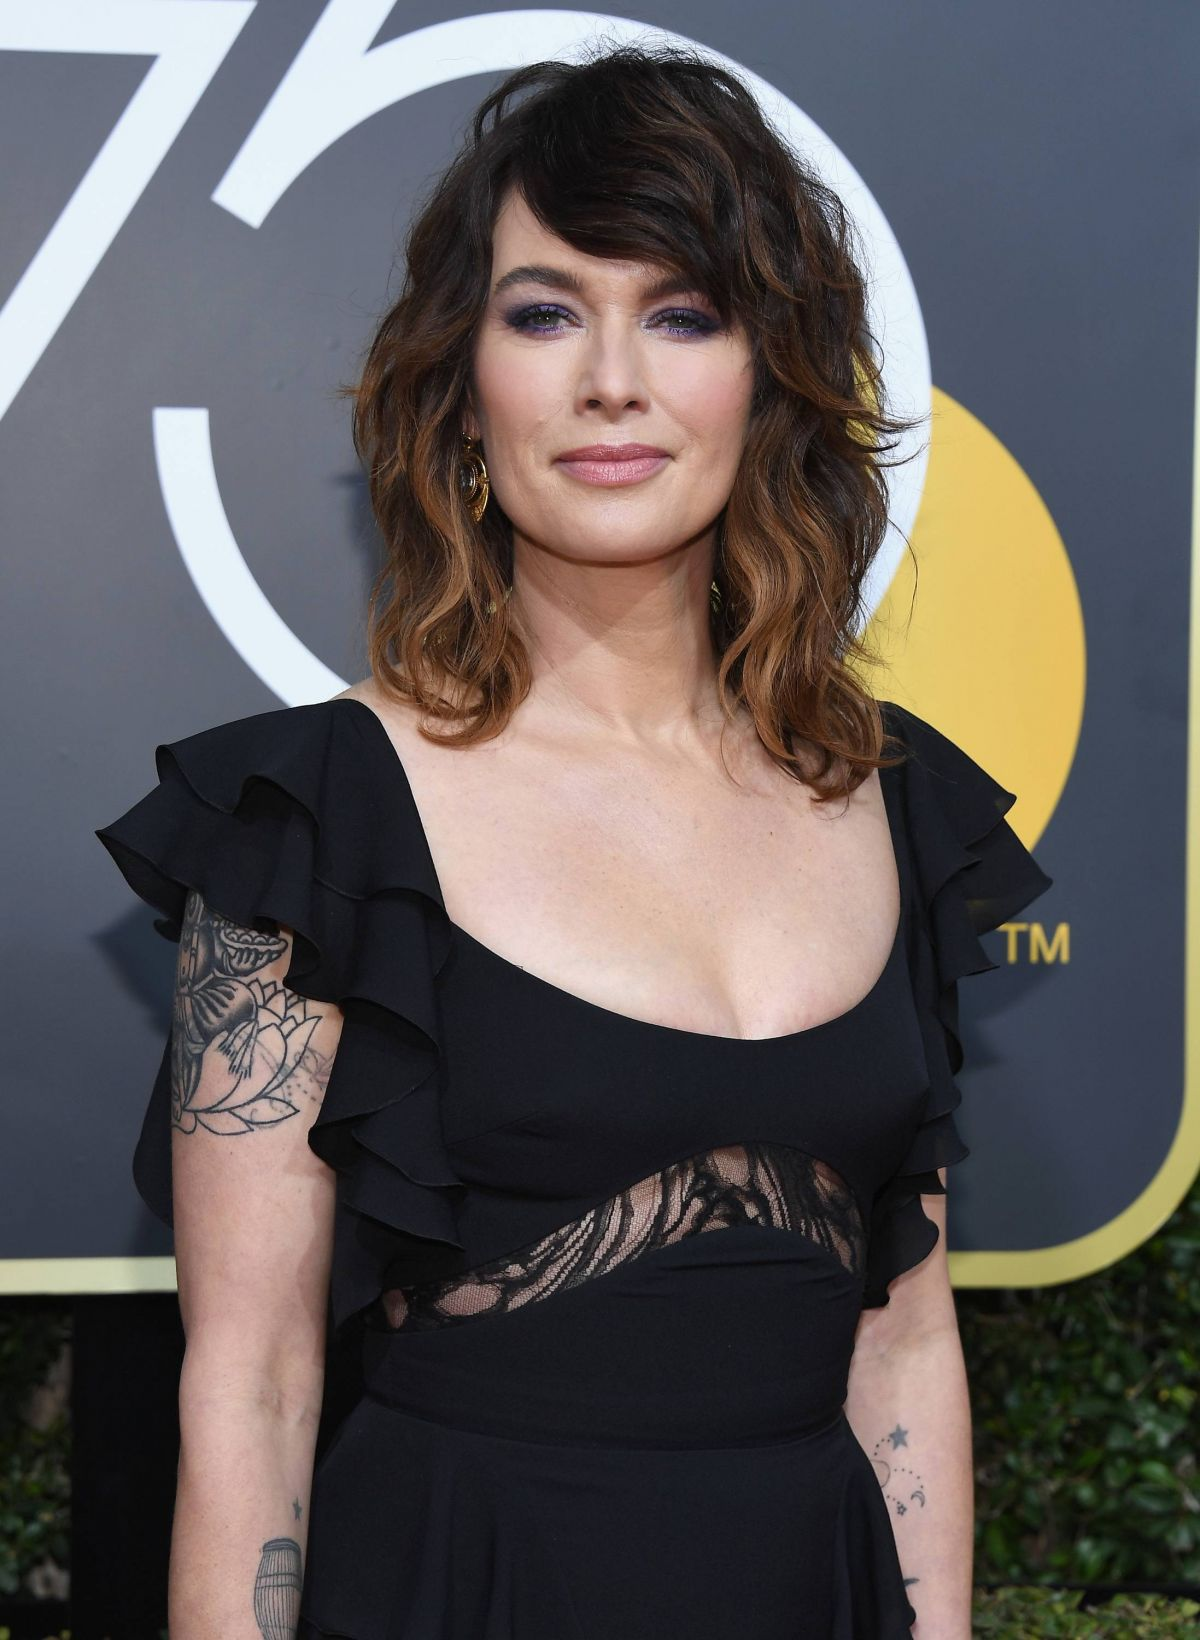 Lena Headey At The 75th Annual Golden Globe Awards in ...